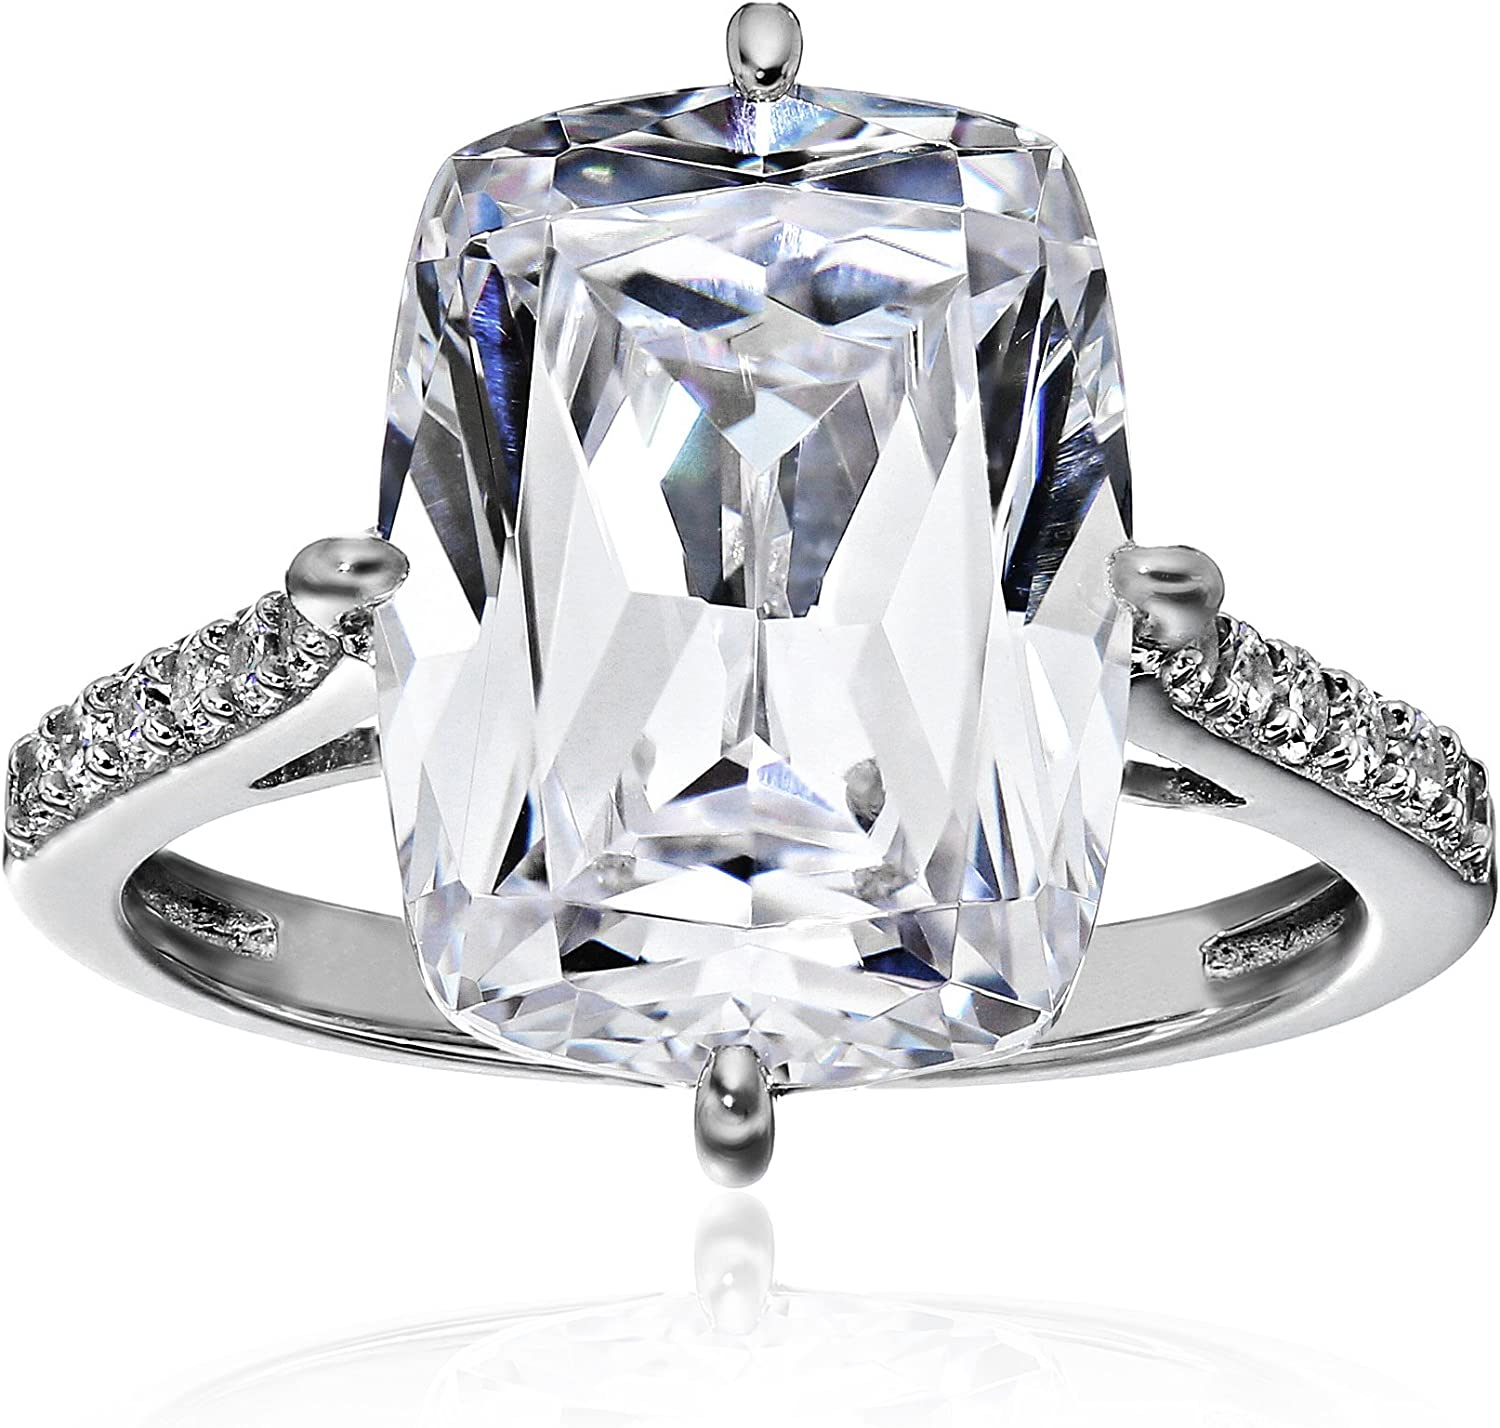 18*12mm White Pear Cut Cubic Zirconia Diamond Engagement Wedding Ring in 925 Sterling Silver For Women Beautiful Celebrity Inspiration Ring